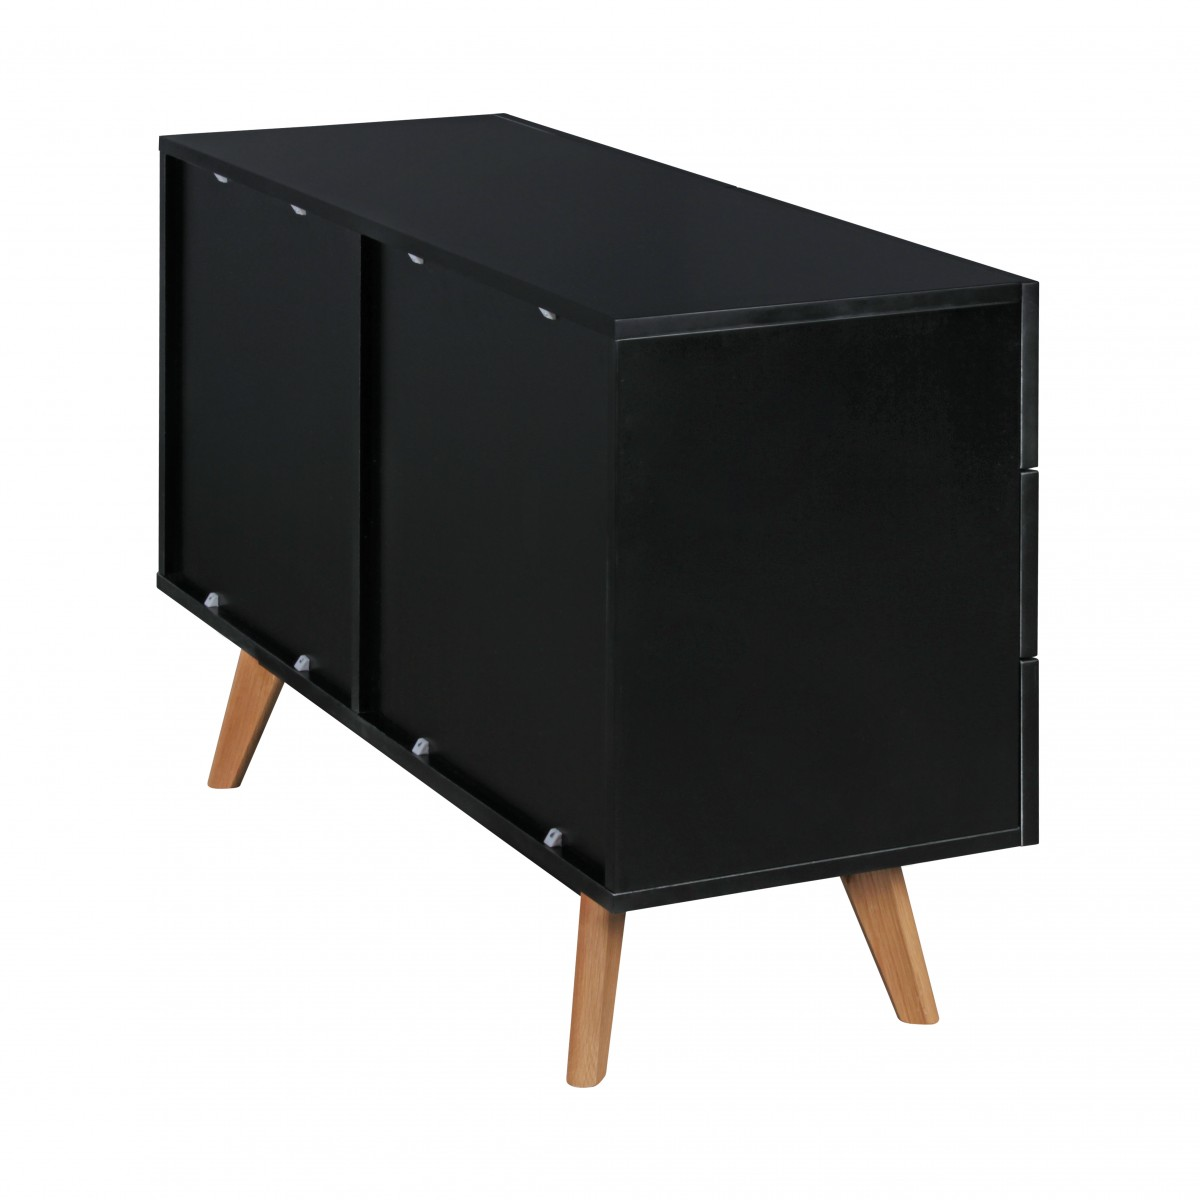 dielenmbel hochwertig perfect beautiful crays kommode skuffe lger hvid lak with kommode cm with. Black Bedroom Furniture Sets. Home Design Ideas